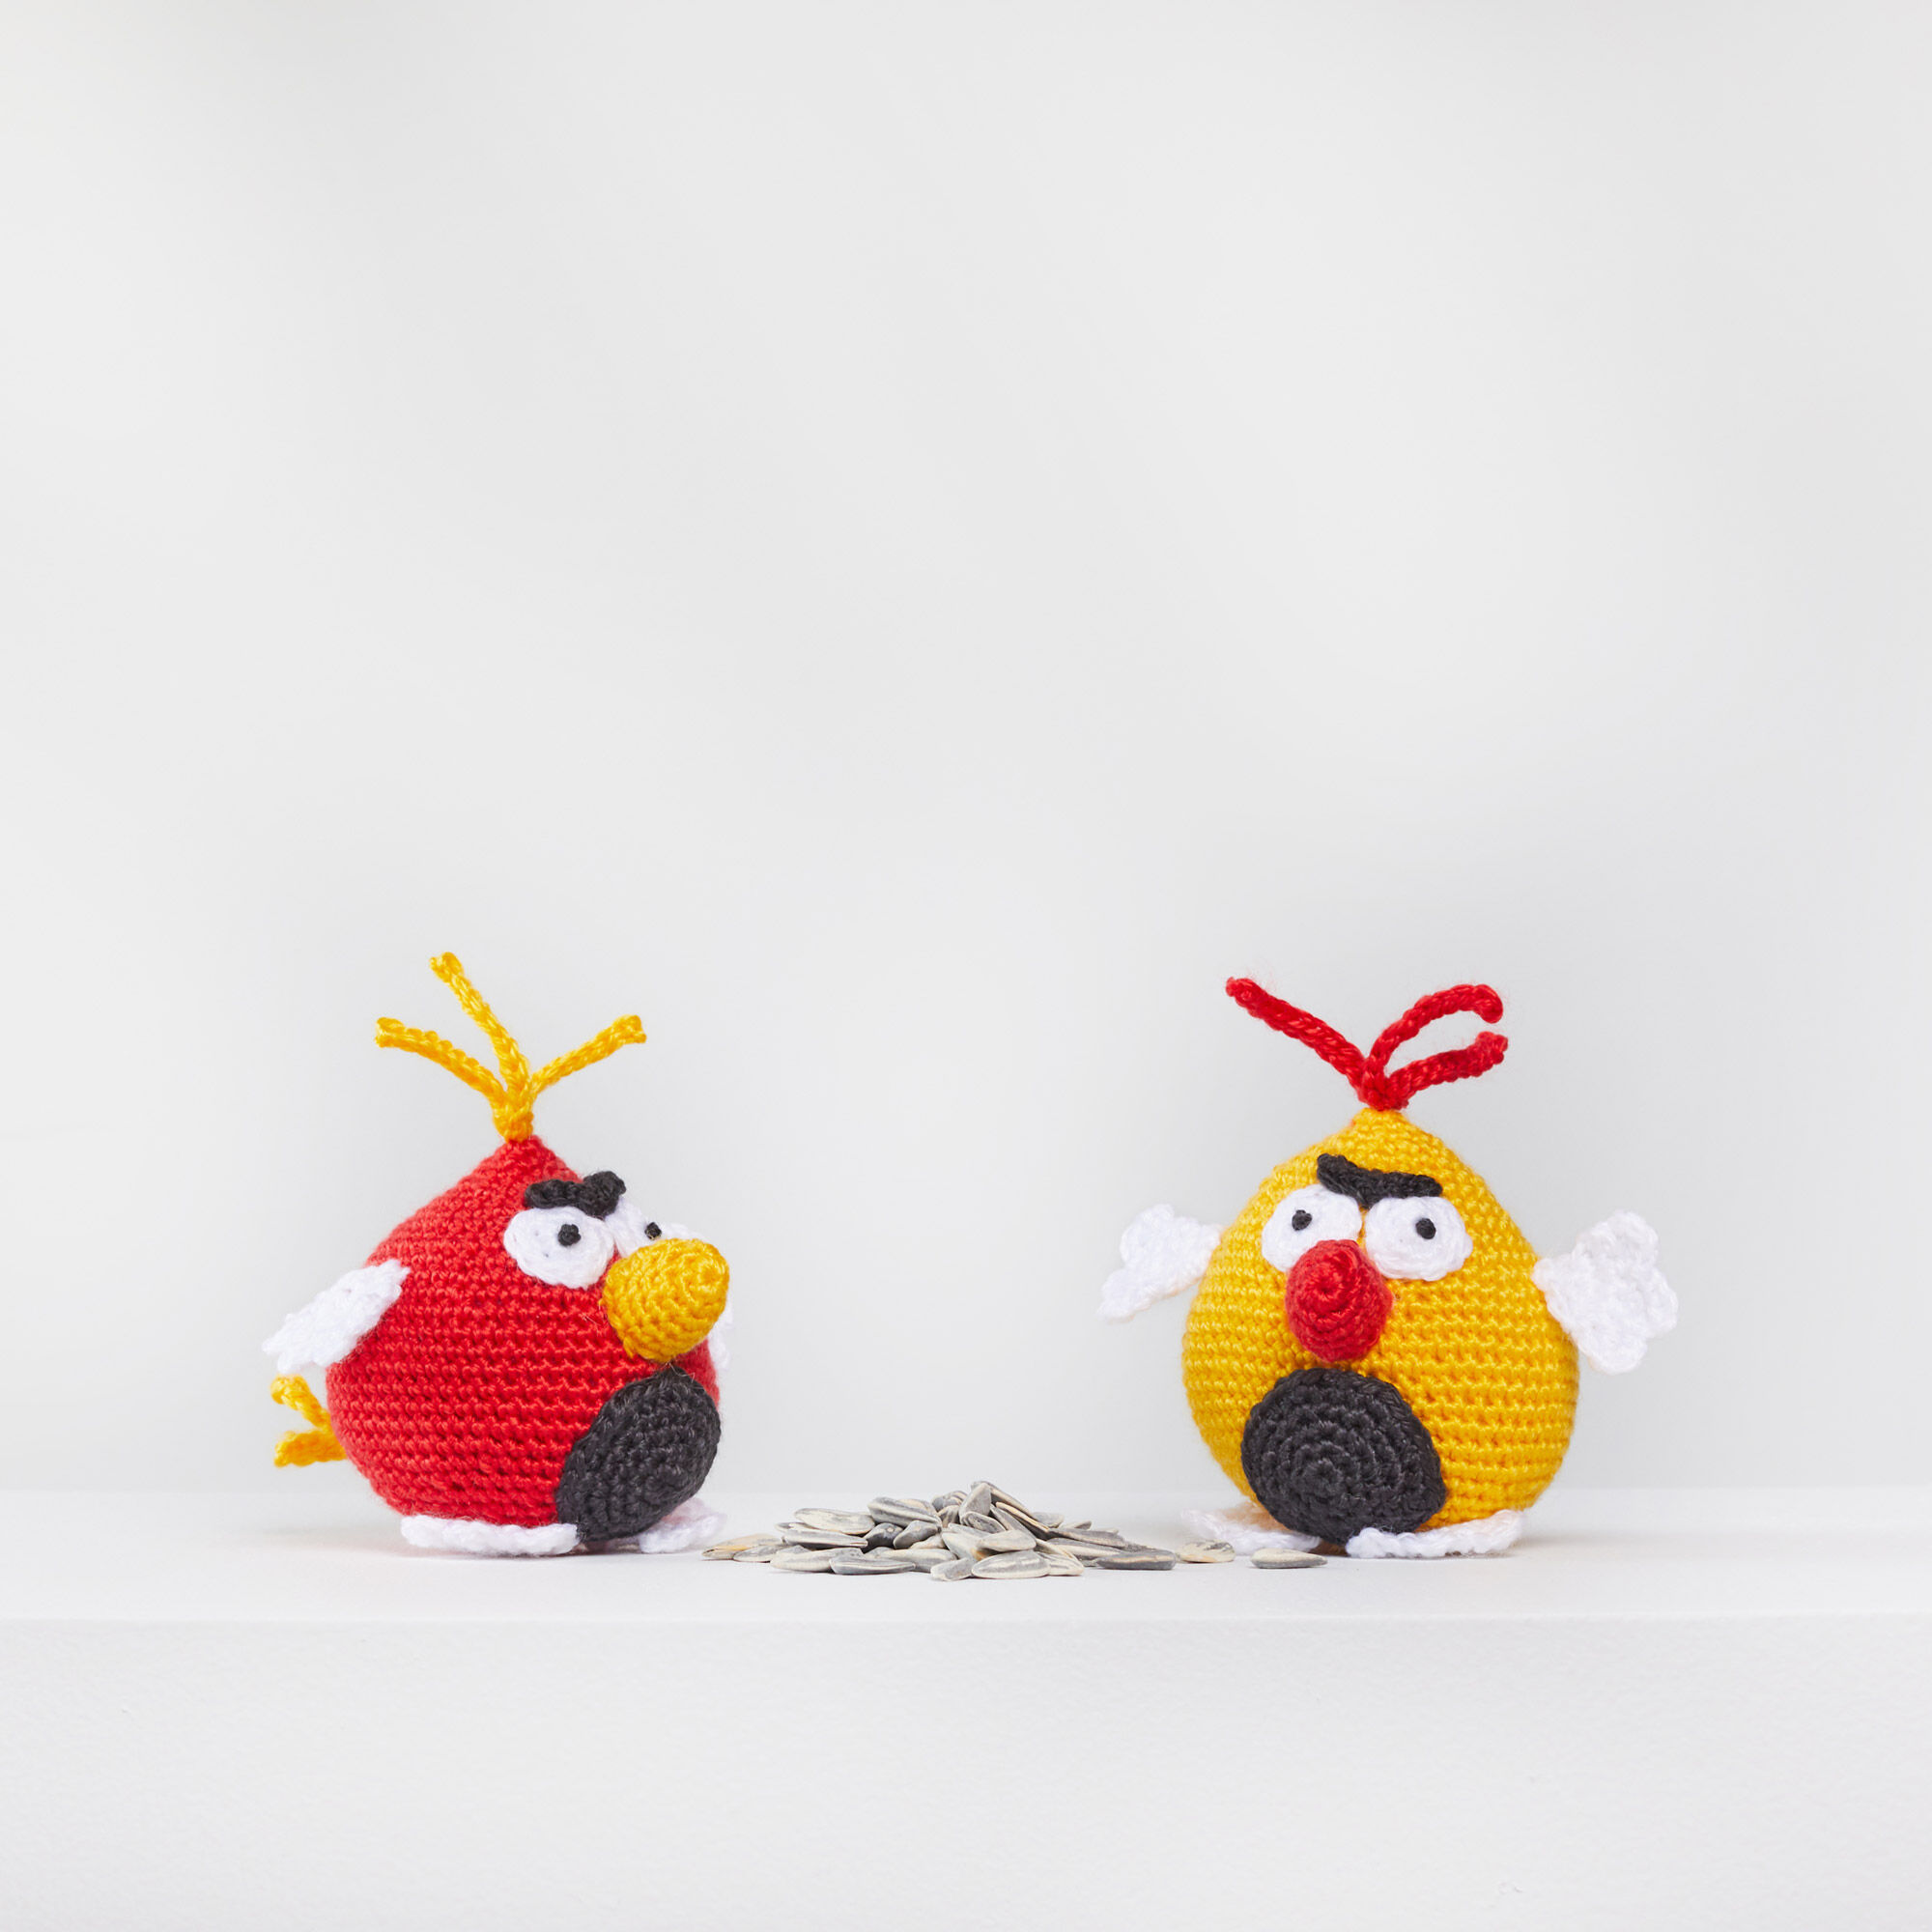 Solmuteoriaa | Crochet Patterns | Angry Birds Stella | 2000x2000